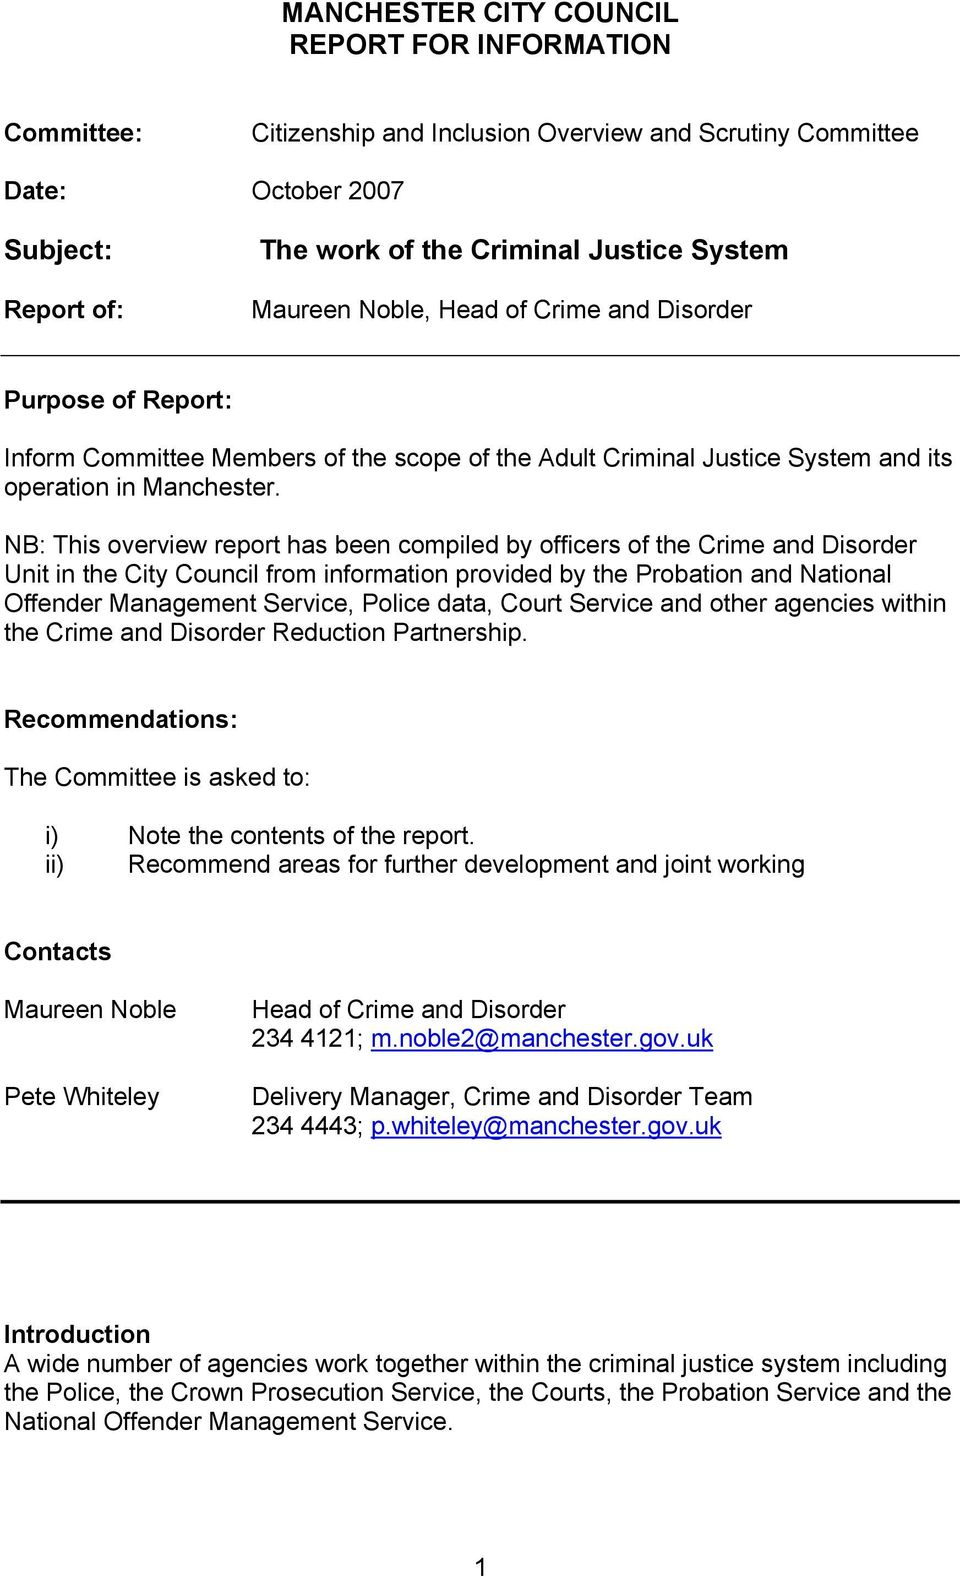 NB: This overview report has been compiled by officers of the Crime and Disorder Unit in the City Council from information provided by the Probation and National Offender Management Service, Police